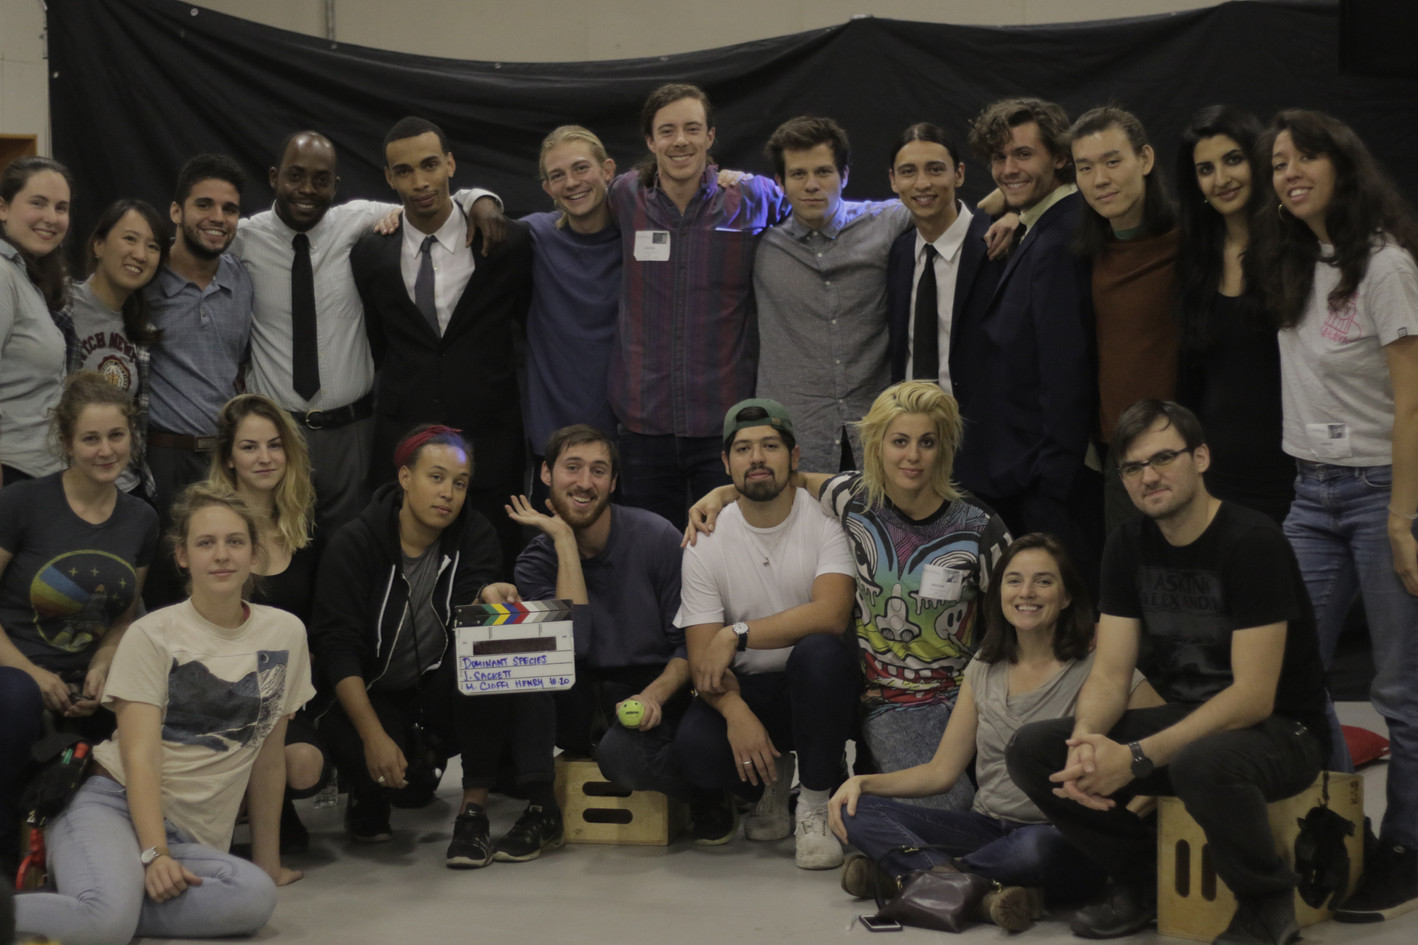 Dominant Species Cast and Crew.